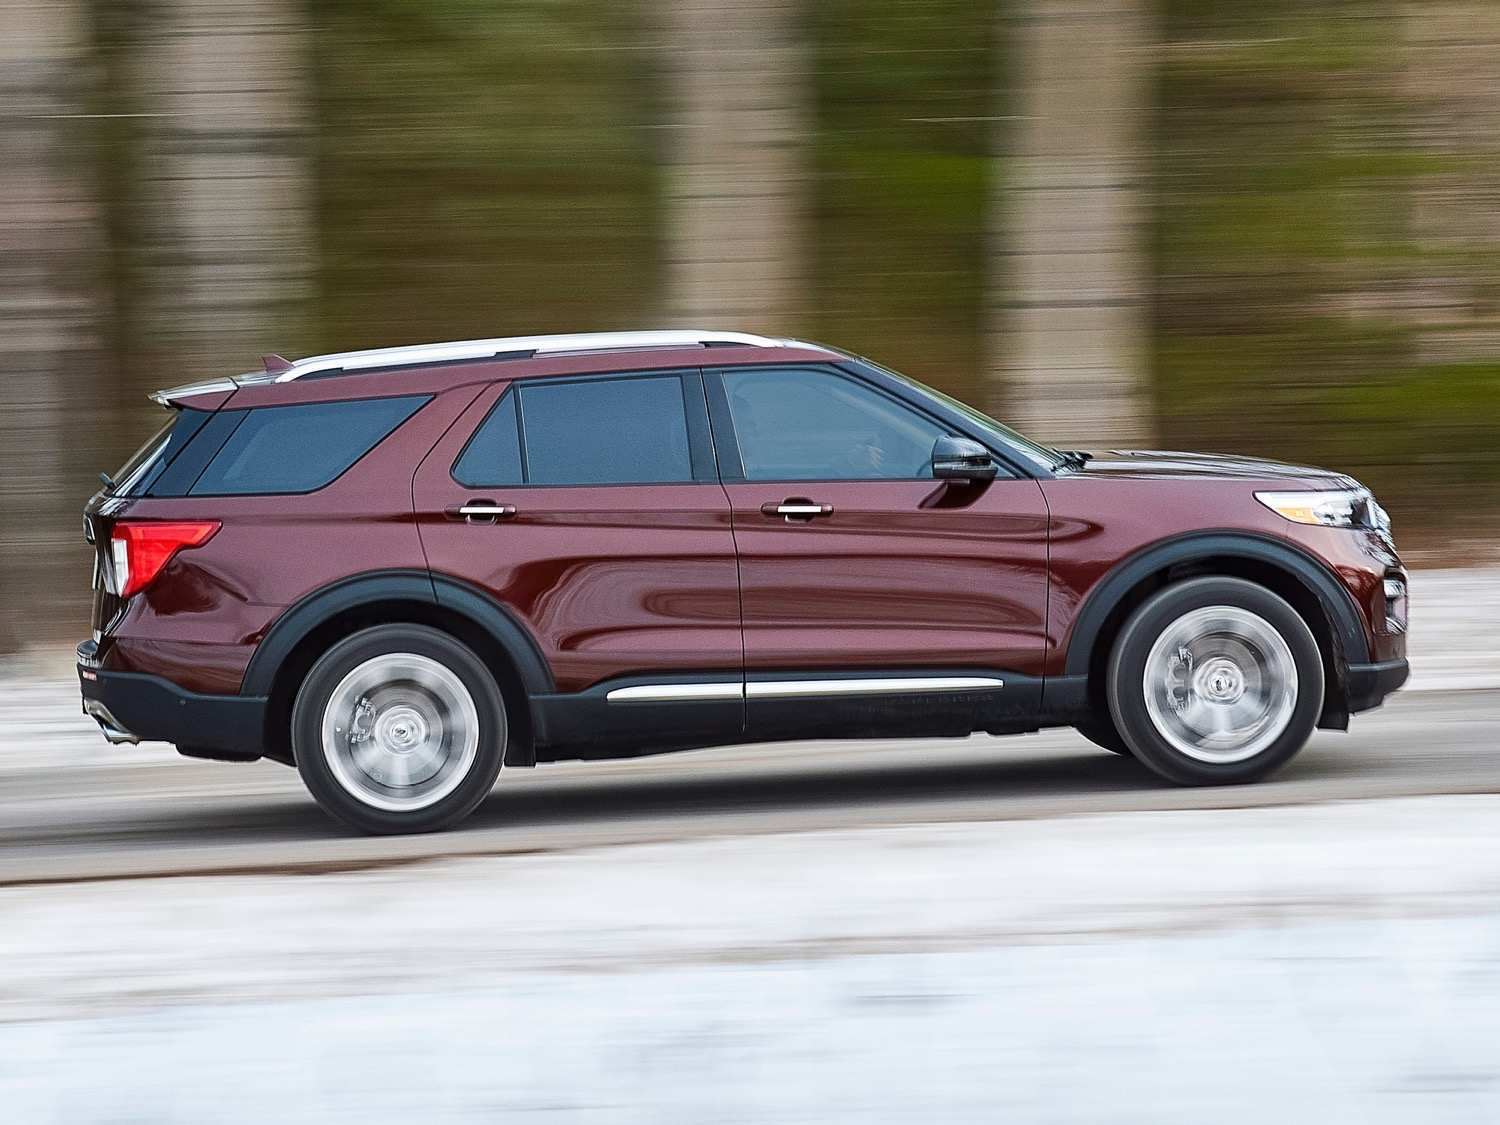 53 New When Can You Buy A 2020 Ford Explorer Overview with When Can You Buy A 2020 Ford Explorer